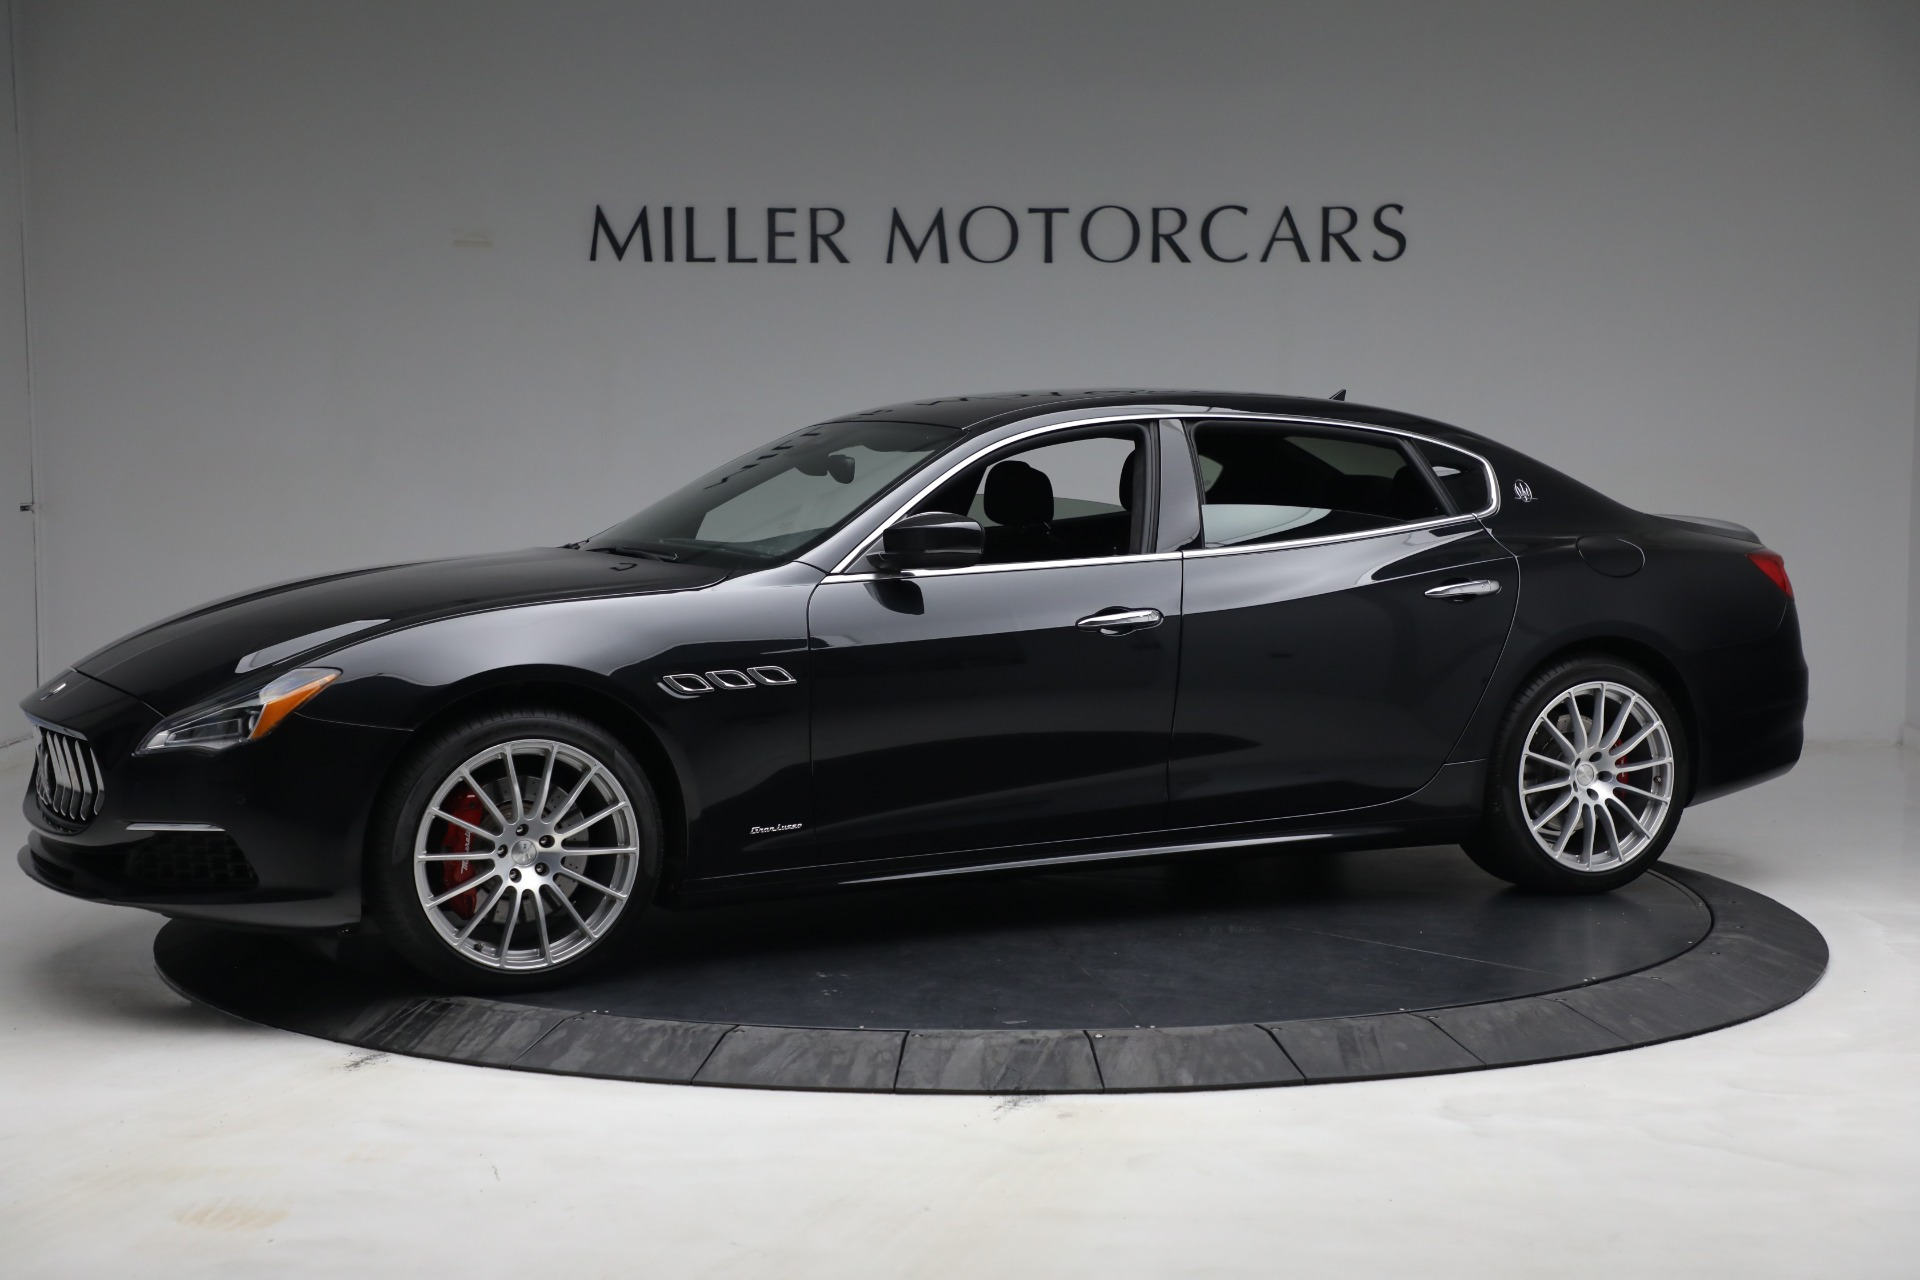 New 2019 Maserati Quattroporte S Q4 GranLusso For Sale In Greenwich, CT 2619_p2